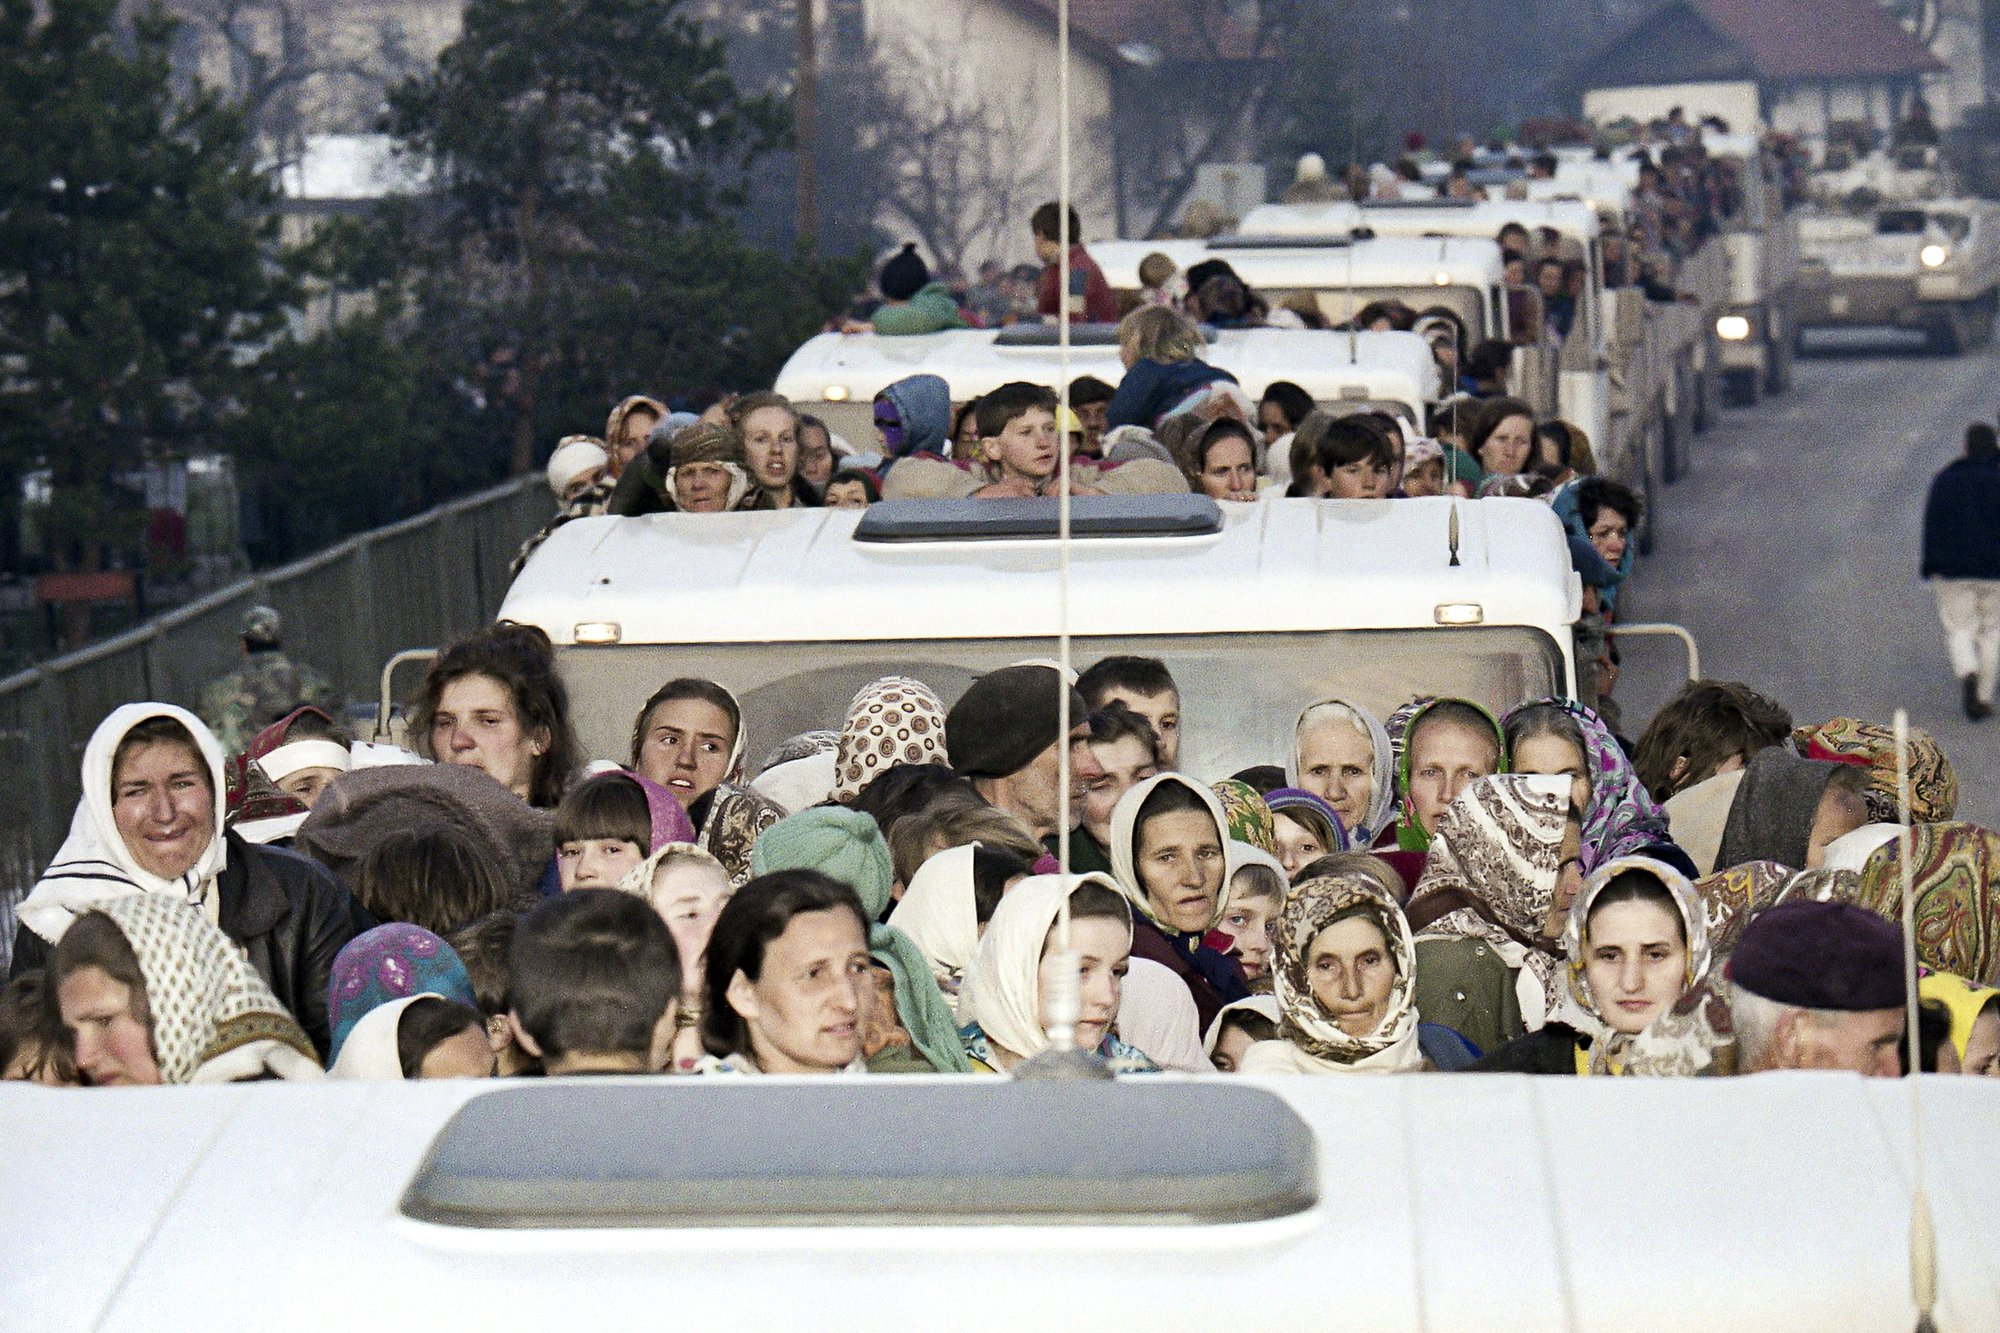 FILE- In this Monday, March 29, 1993 file picture, more than 2,000 refugees from the besieged Muslim enclave of Srebrenica arrive on a United Nations convoy, in Tuzla.  Survivors of the genocide in the eastern Bosnian town of Srebrenica, mainly women, will on Saturday July 11, 2020, commemorate the 25th anniversary of the slaughter of their fathers and brothers, husbands and sons.  At least 8,000 mostly Muslim men and boys were chased through woods in and around Srebrenica by Serb troops in what is considered the worst carnage of civilians in Europe since World War II. The slaughter was also the only atrocity of the brutal war that has been confirmed an act of genocide. (AP Photo/Michel Euler, File)